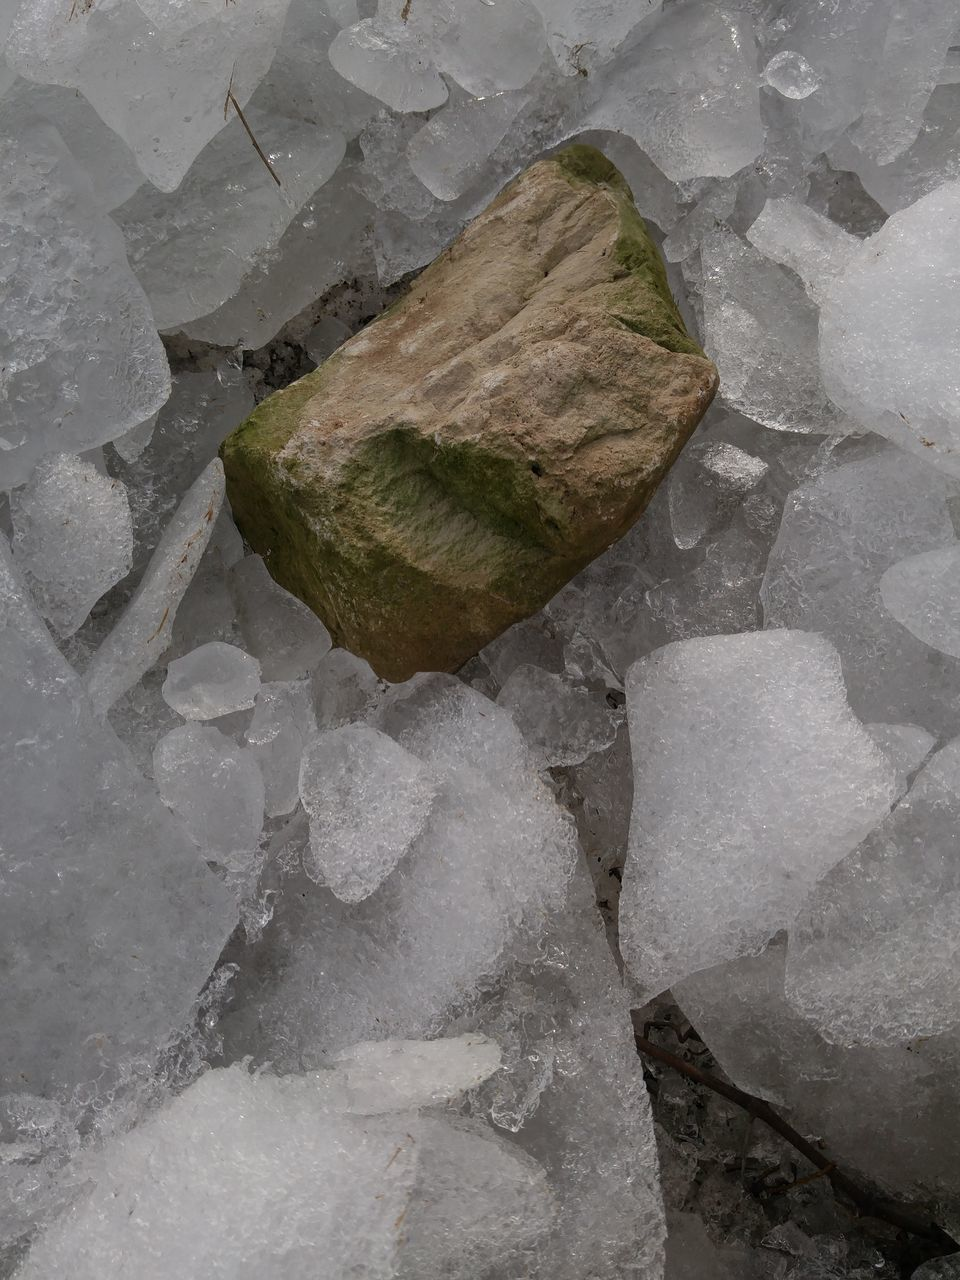 rock - object, water, no people, outdoors, day, textured, nature, beach, close-up